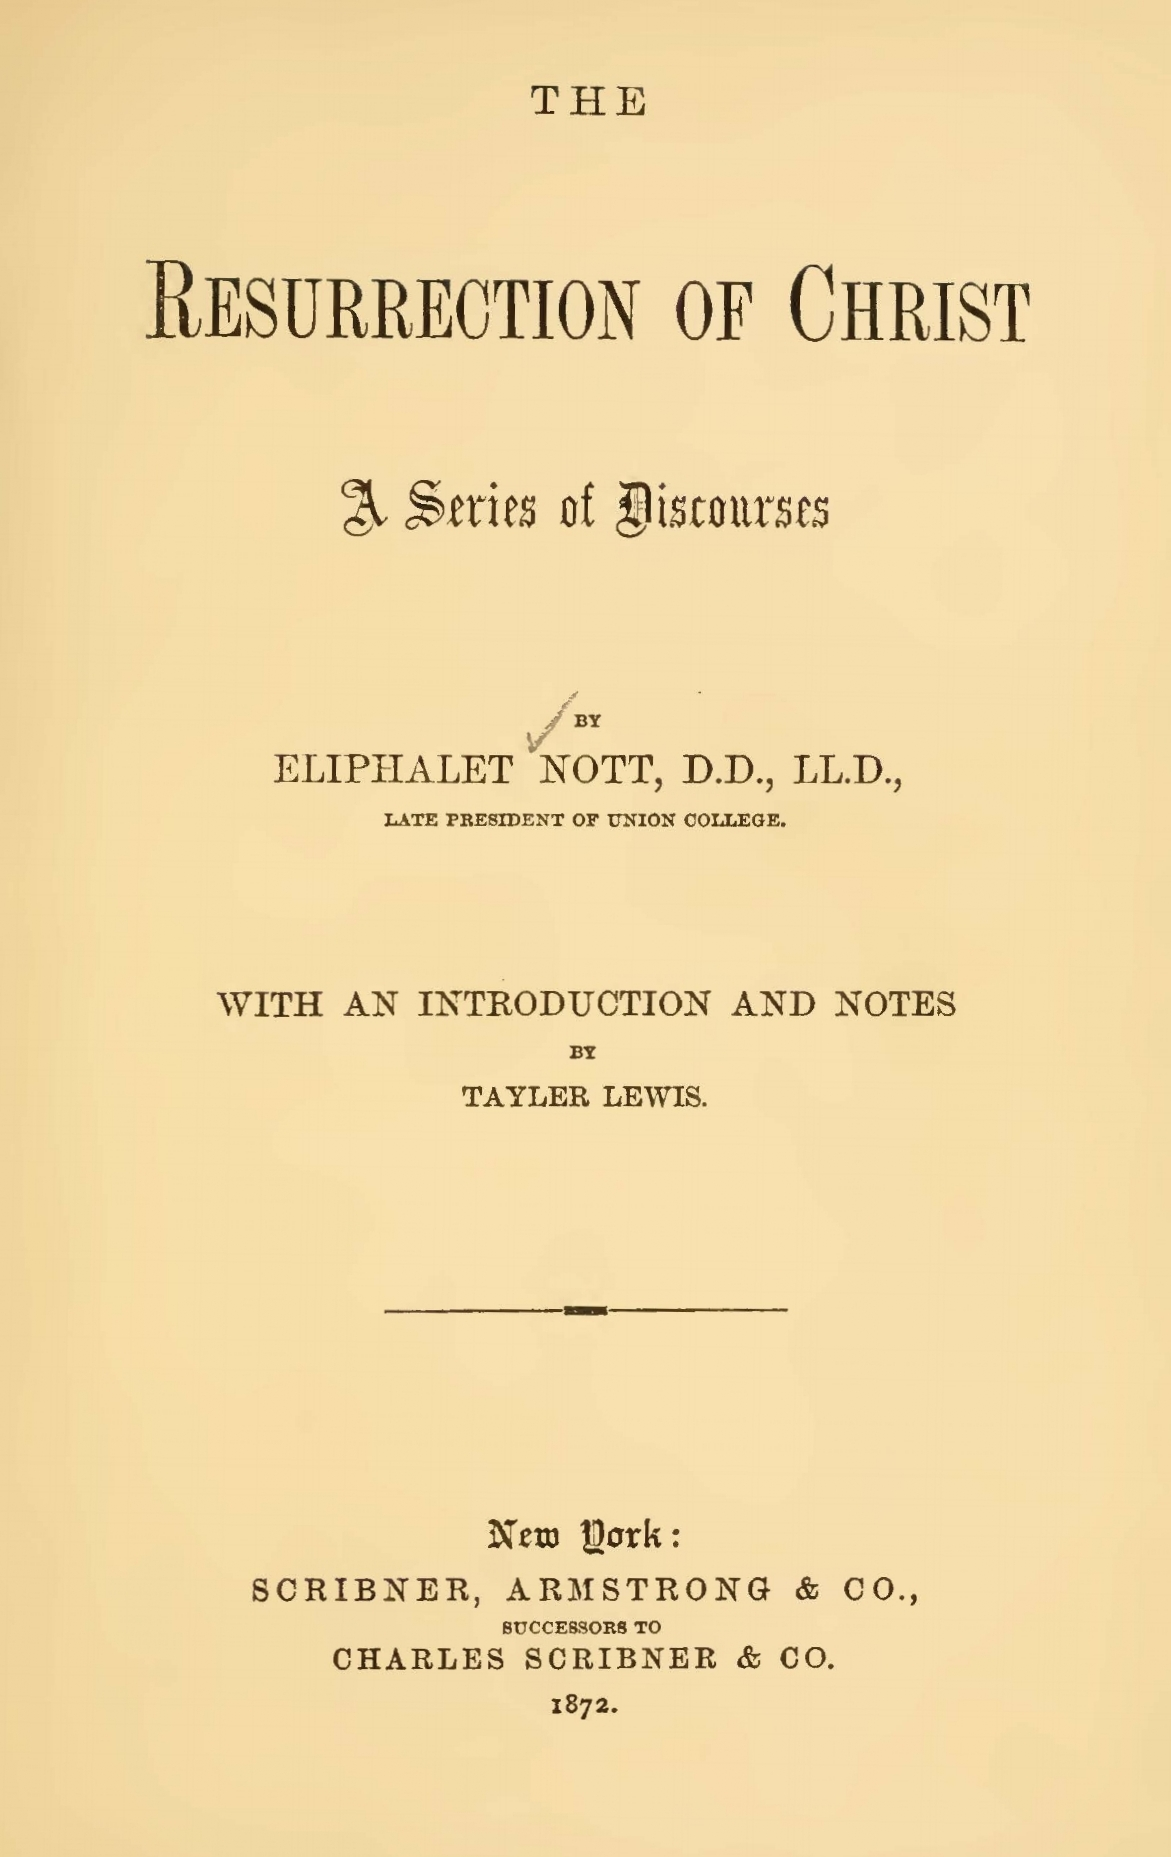 Nott, Eliphalet, The Resurrection of Christ A Series of Discourses Title Page.jpg